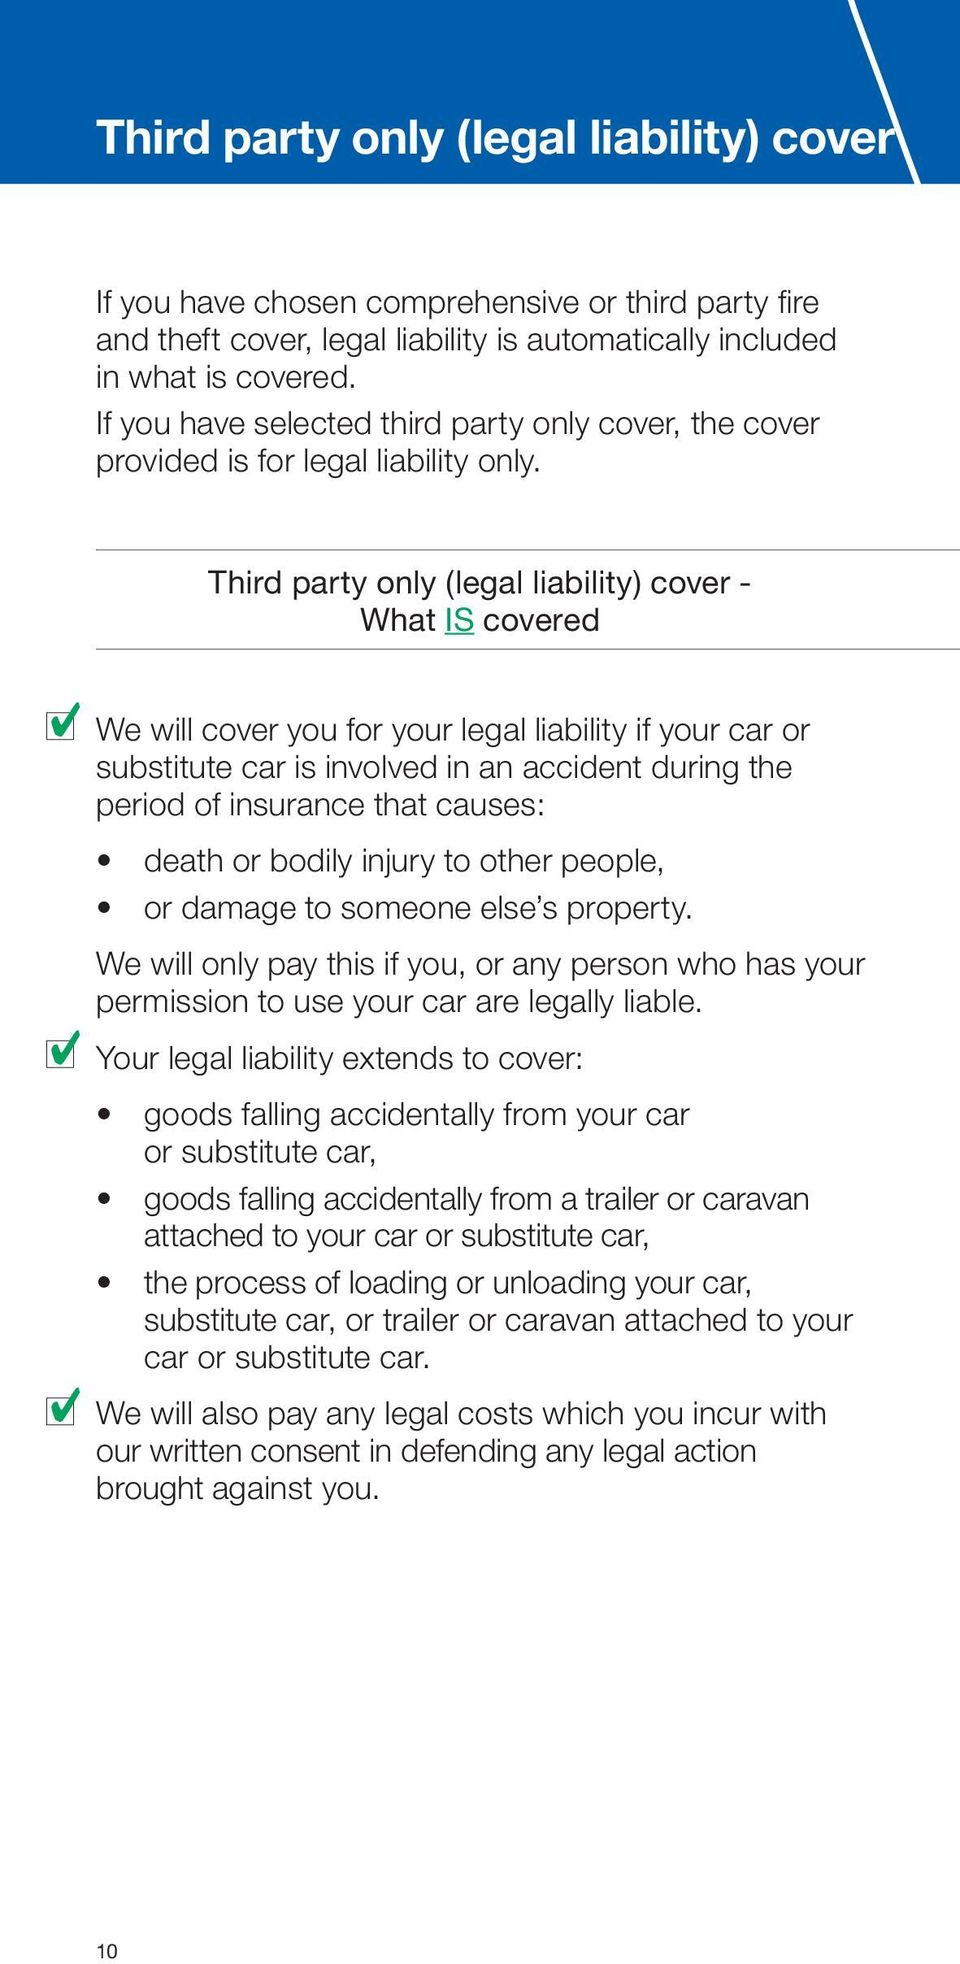 Third party only (legal liability) cover - What IS covered We will cover you for your legal liability if your car or substitute car is involved in an accident during the period of insurance that